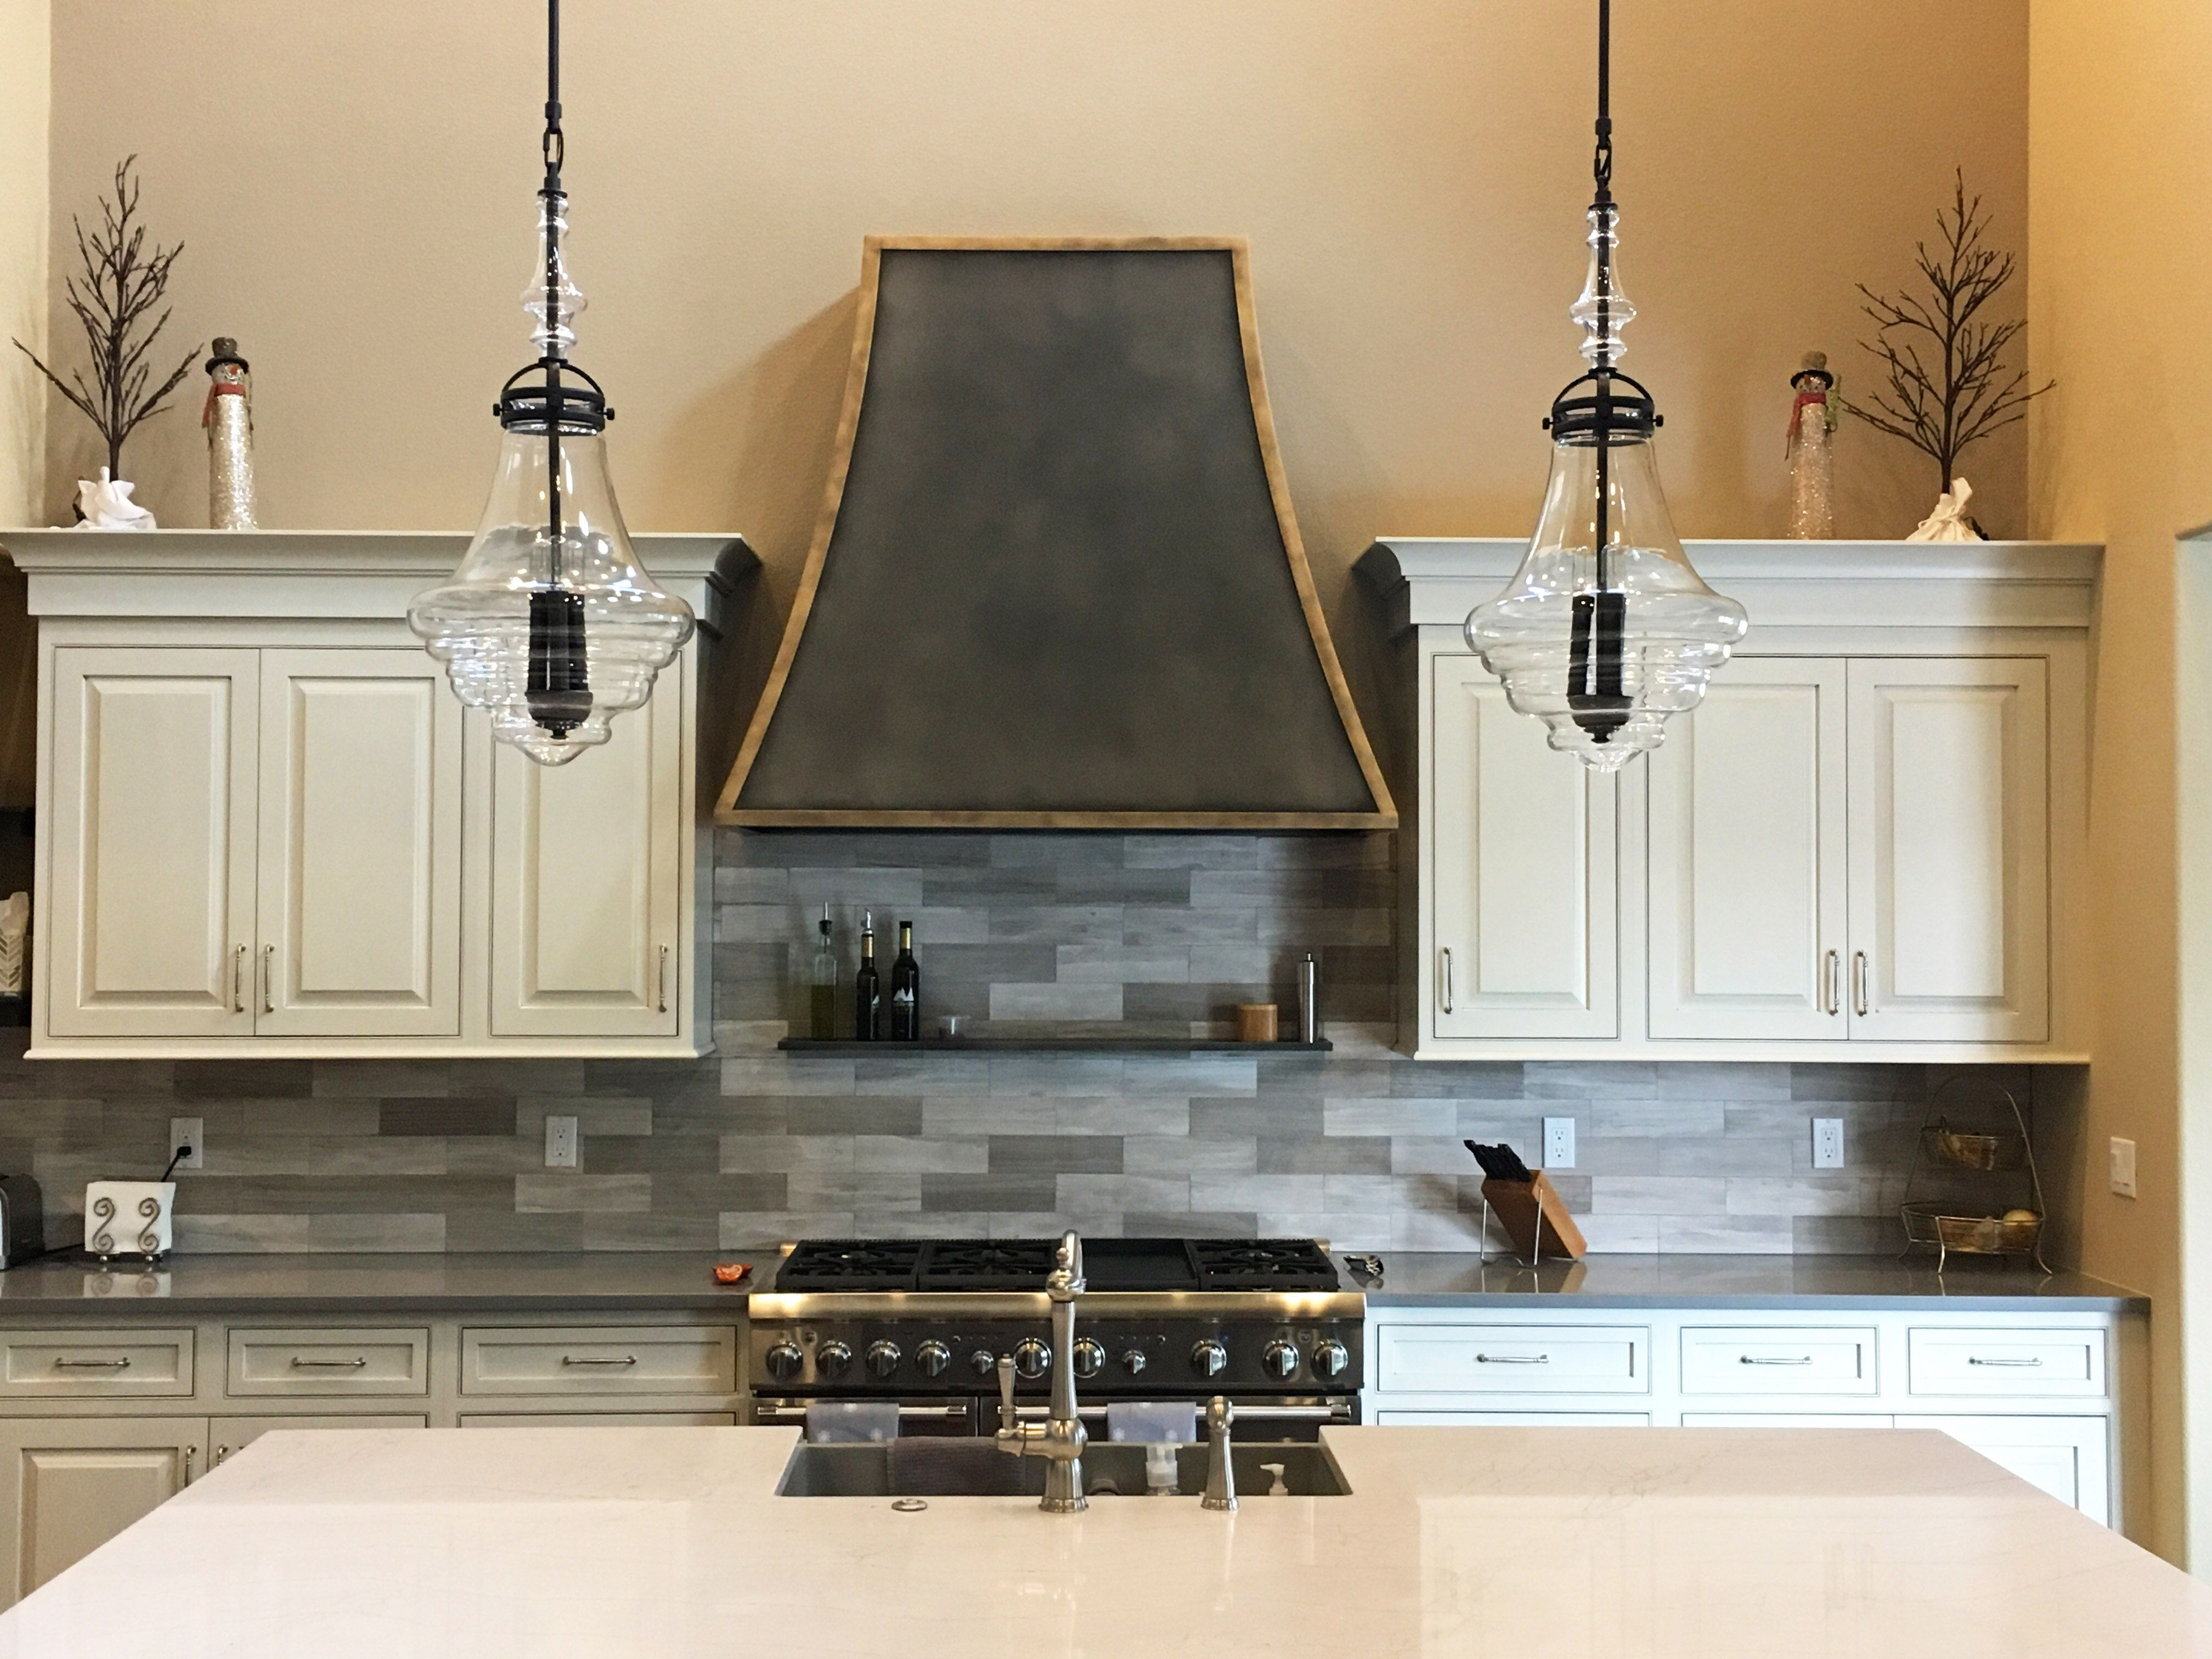 Custom Tabernash Range Hood From Raw Urth Designs In An Antique Patina With Gorgeous Antique Brass Detail Kitchen Hoods Kitchen Refinishing Kitchen Style